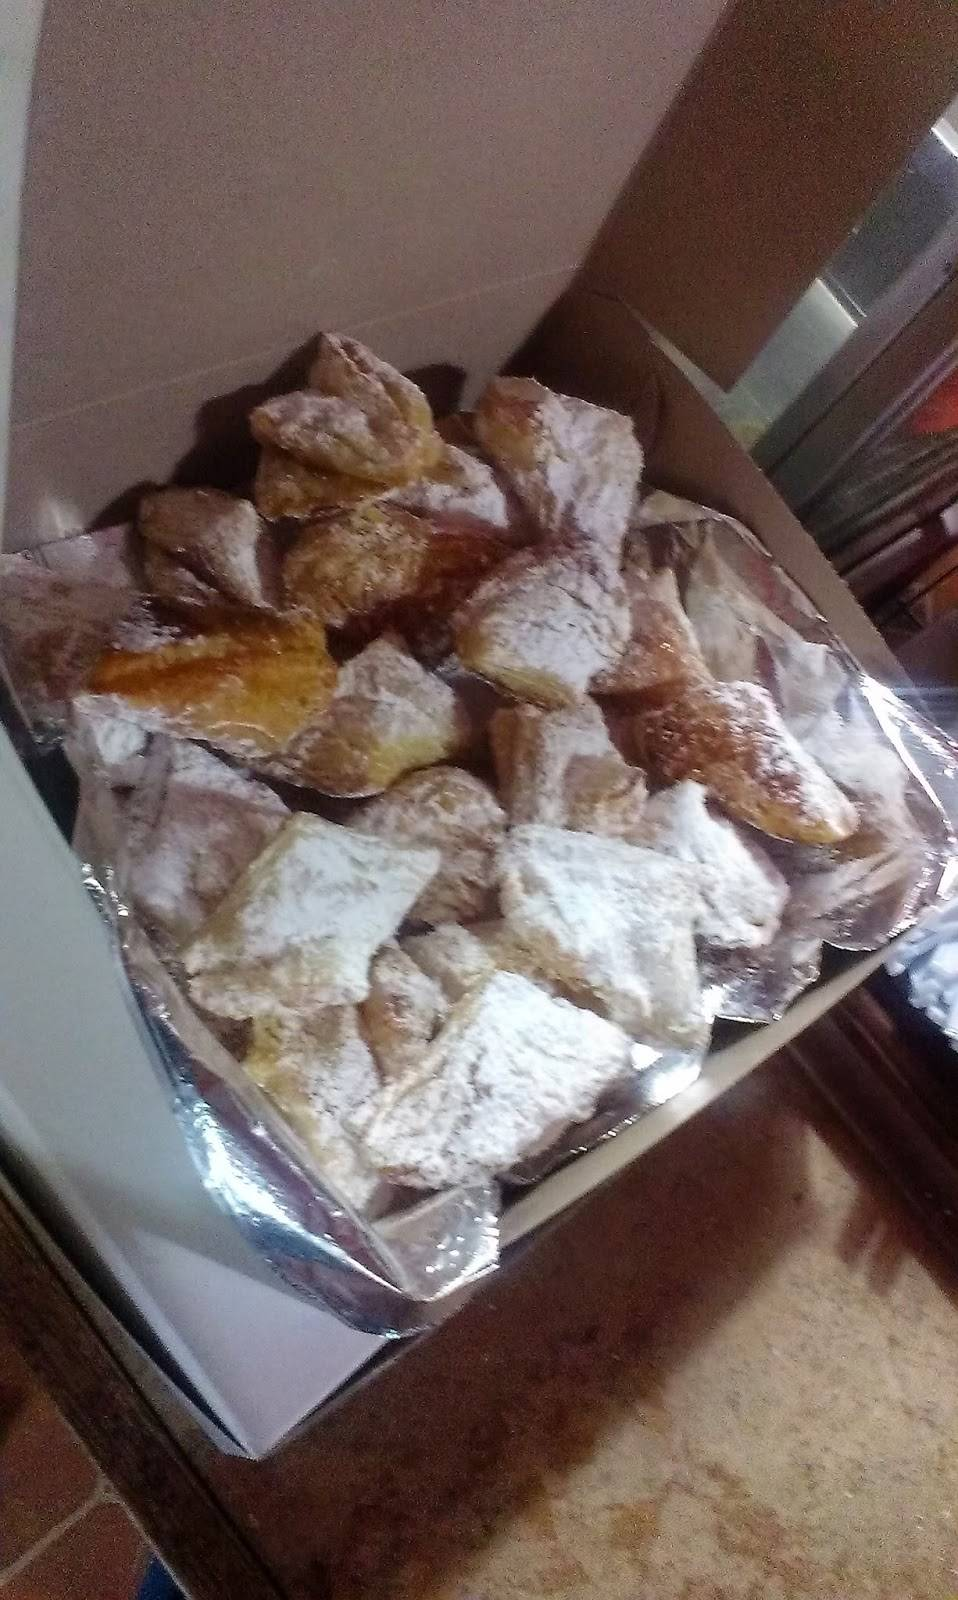 Jamies Pastries and Restaurant   restaurant   523 Marcellus St, Syracuse, NY 13204, USA   3154225000 OR +1 315-422-5000